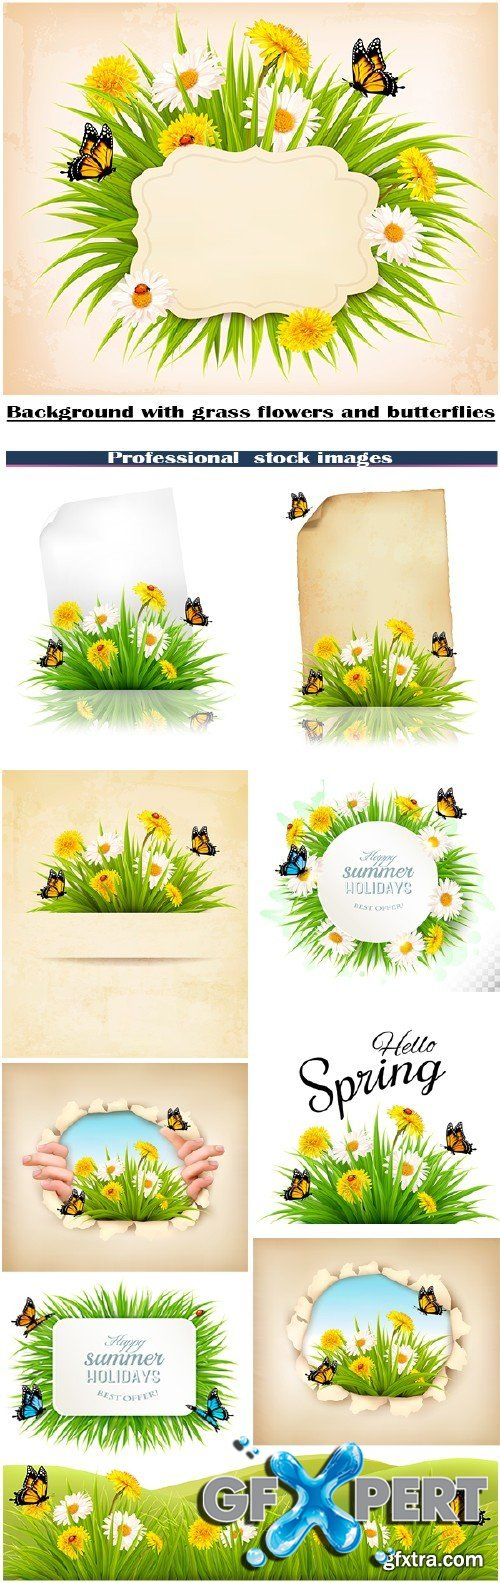 Stock vector backgrounds with grass, flowers and butterflies